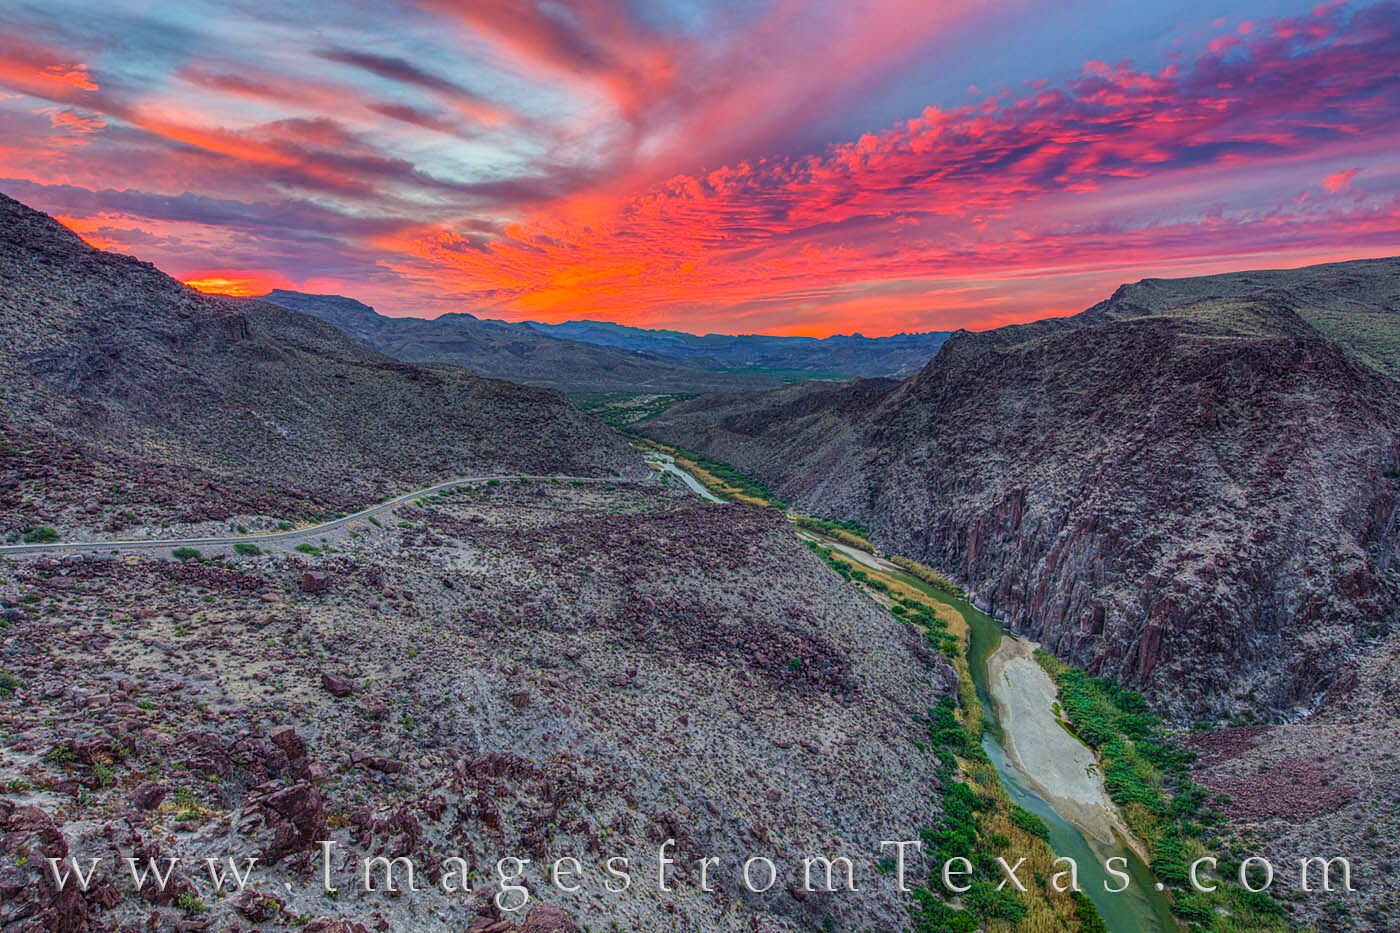 Dom rock, big bend ranch, rio grande, mexico, texas, landscapes, big hill, FM 170, presidio, lajitas, vistas, west texas, photo